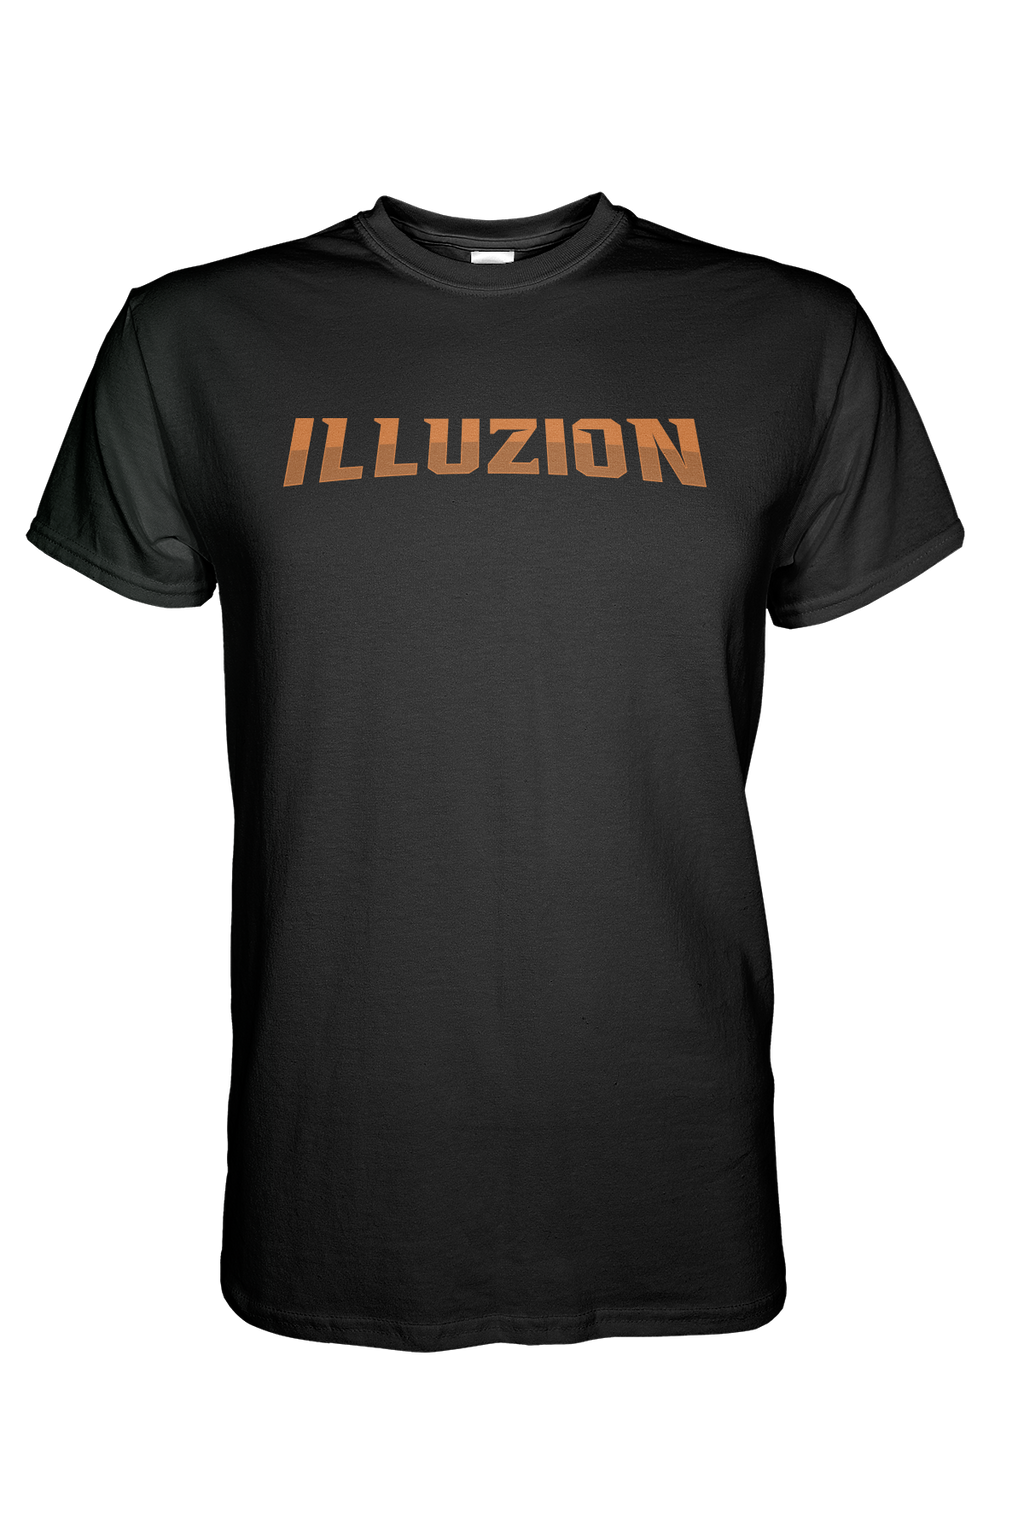 Illuzion Text Shirt